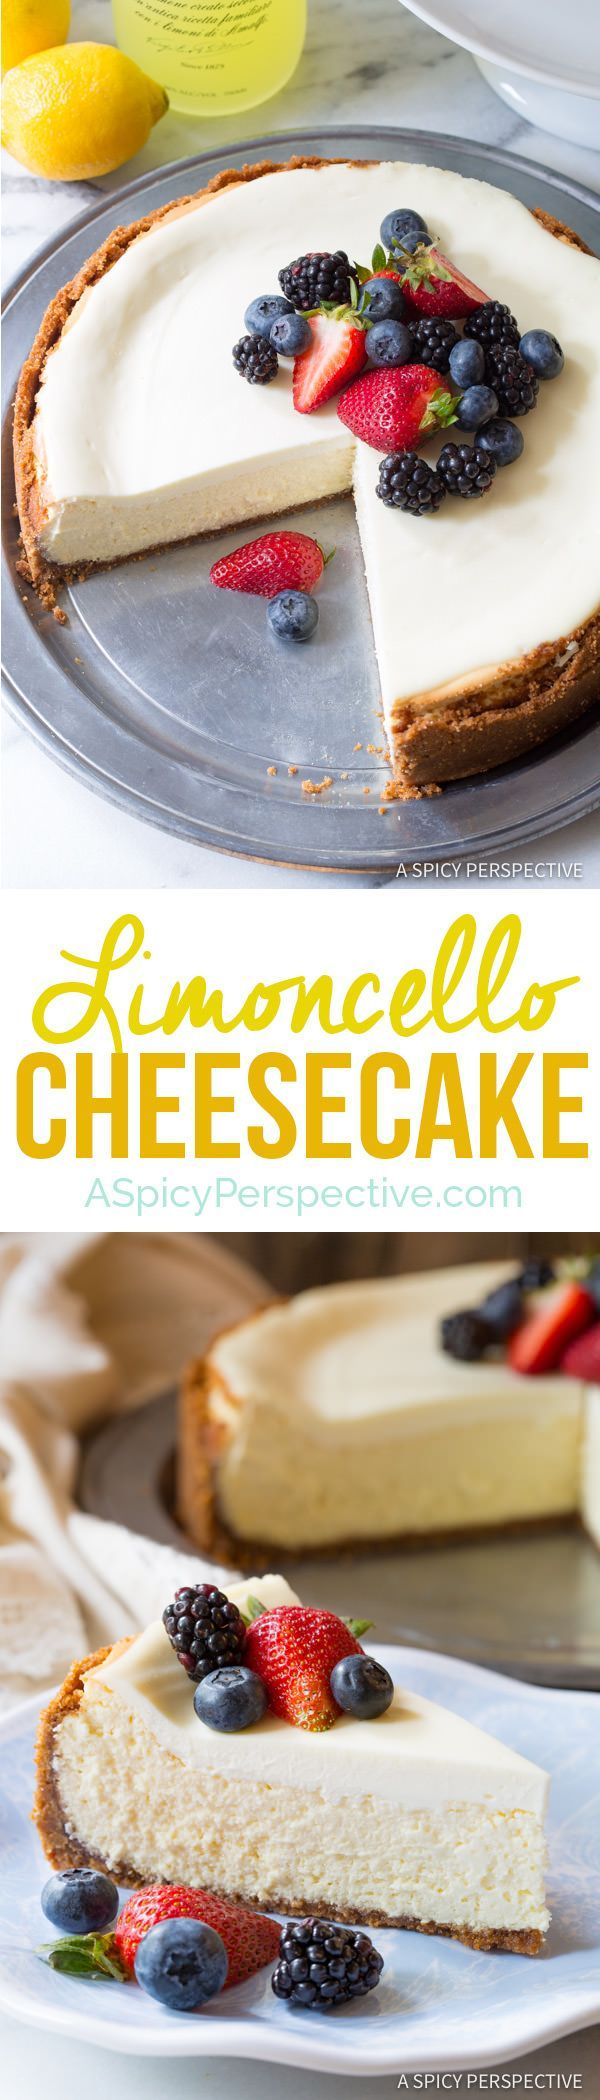 Silky Limoncello Cheesecake with Biscoff Crust | ASpicyPerspective.com